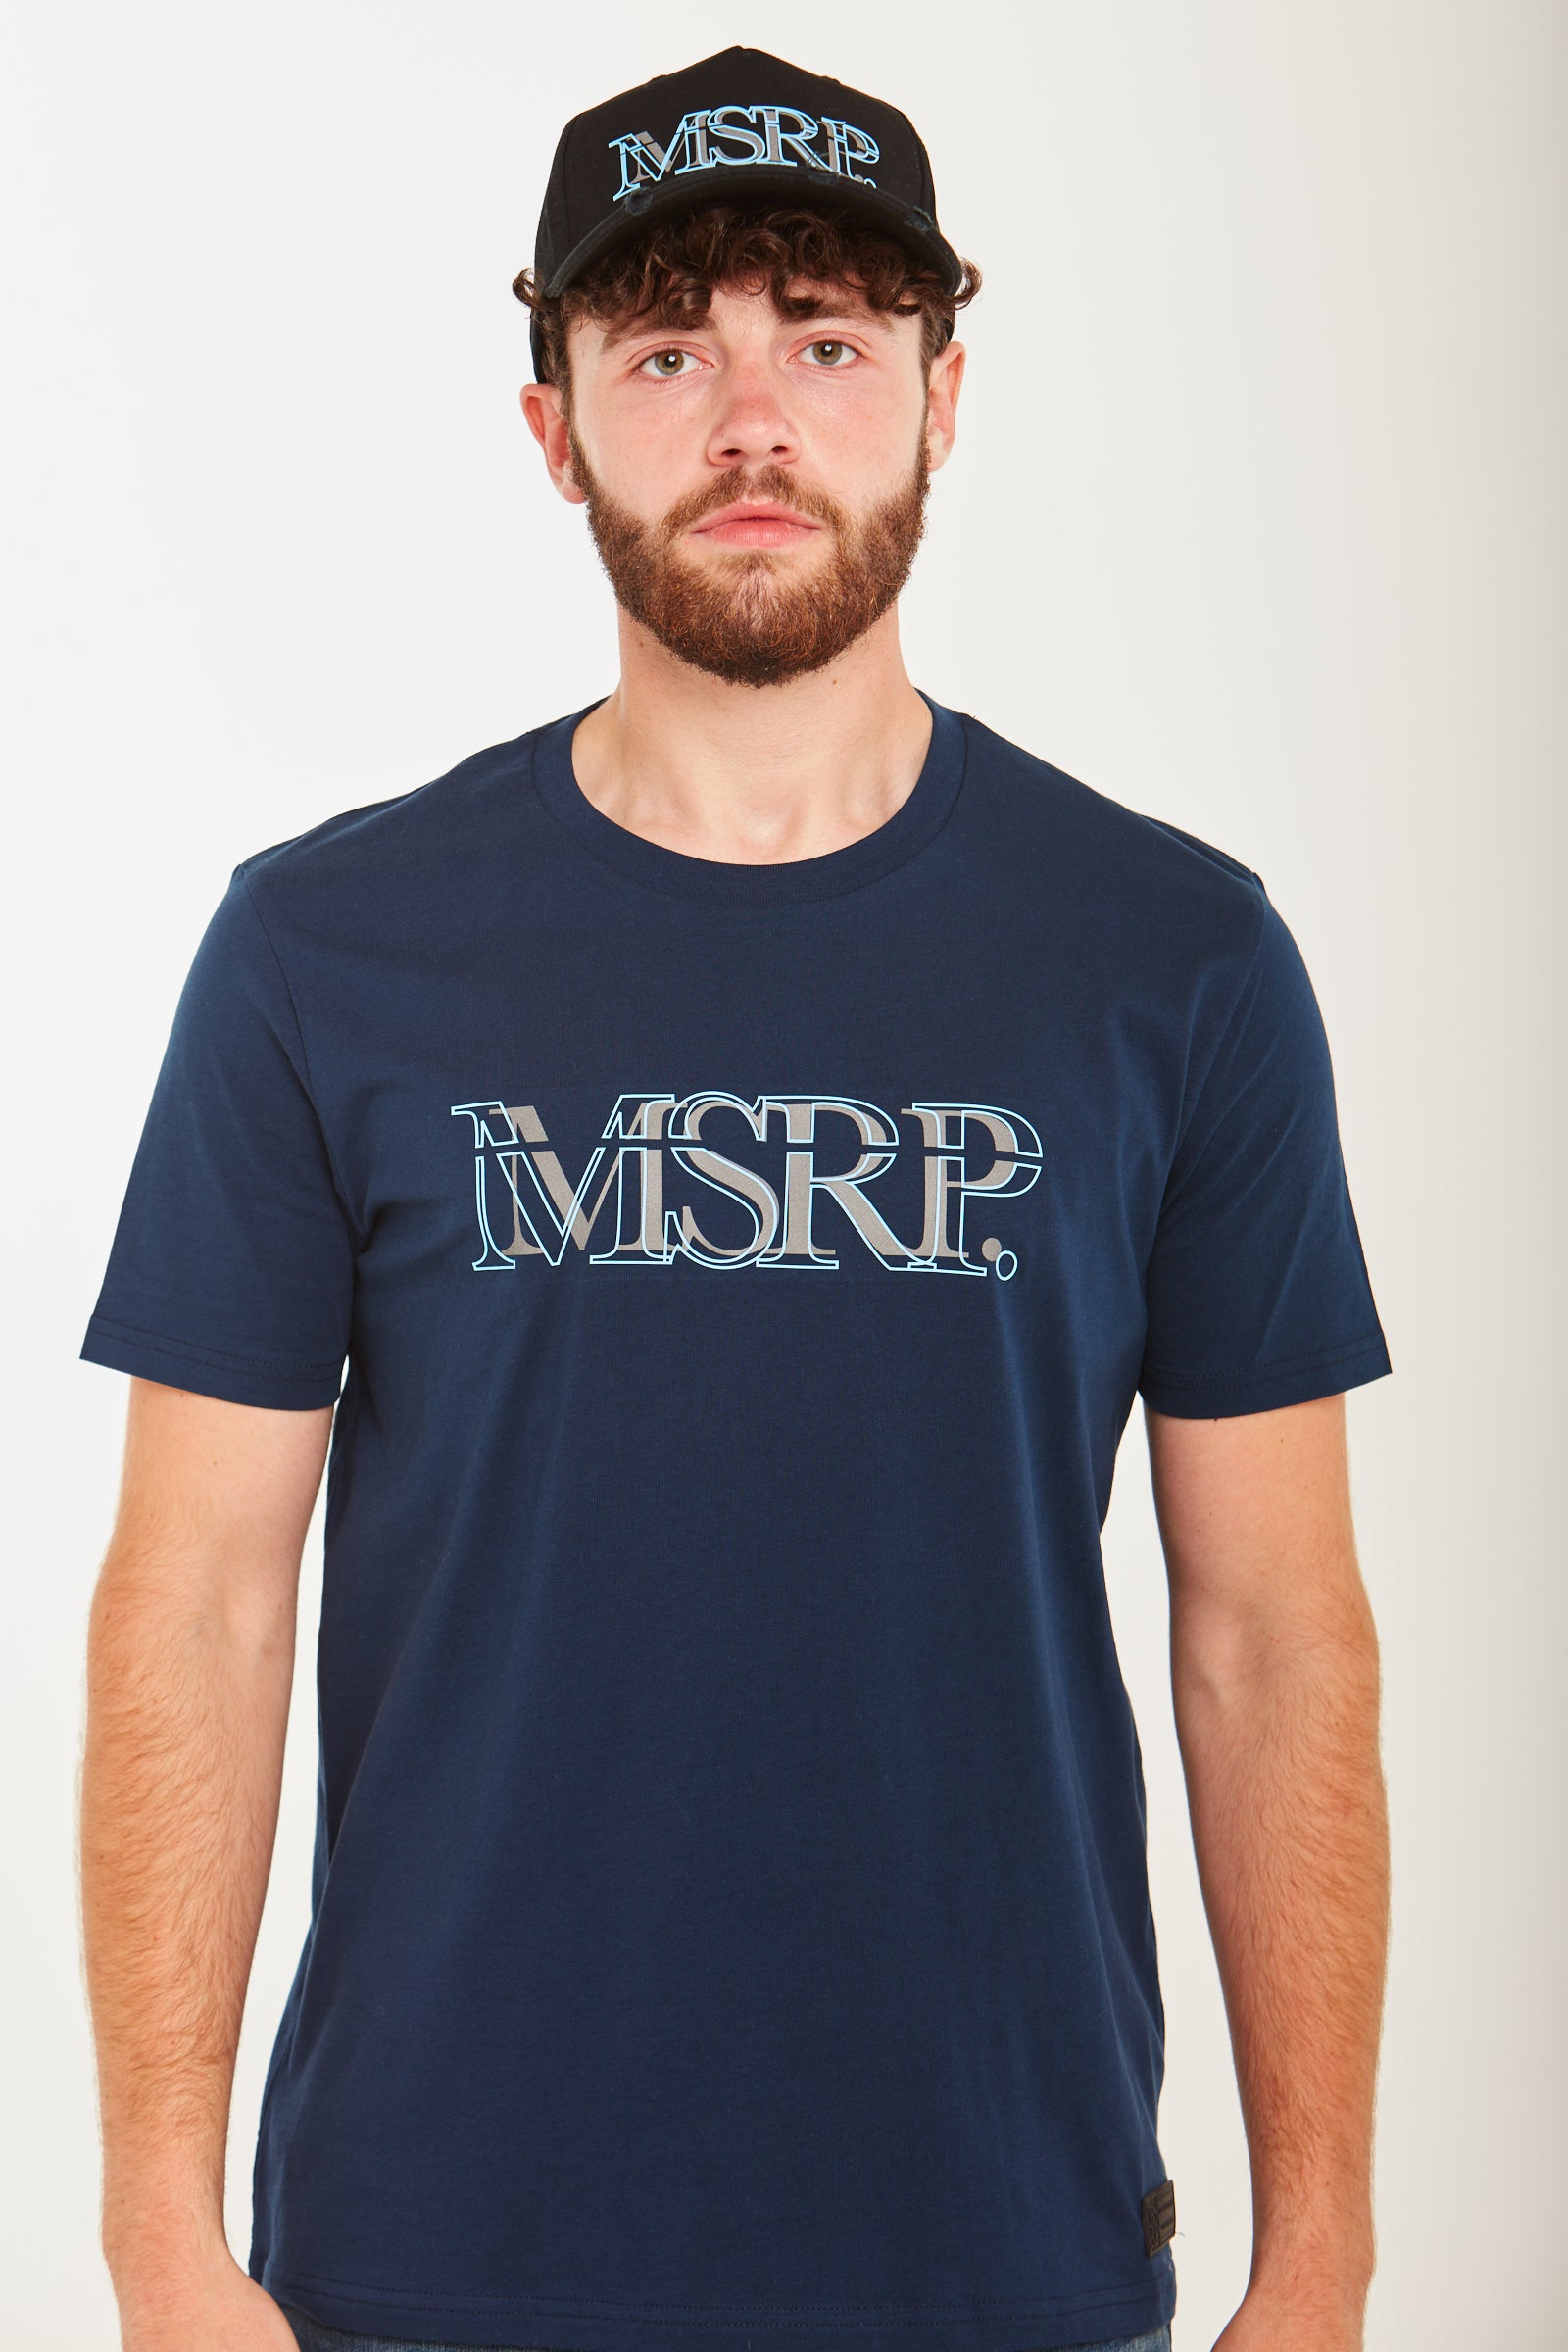 Cyan Offset MSRP T-Shirt (Navy)